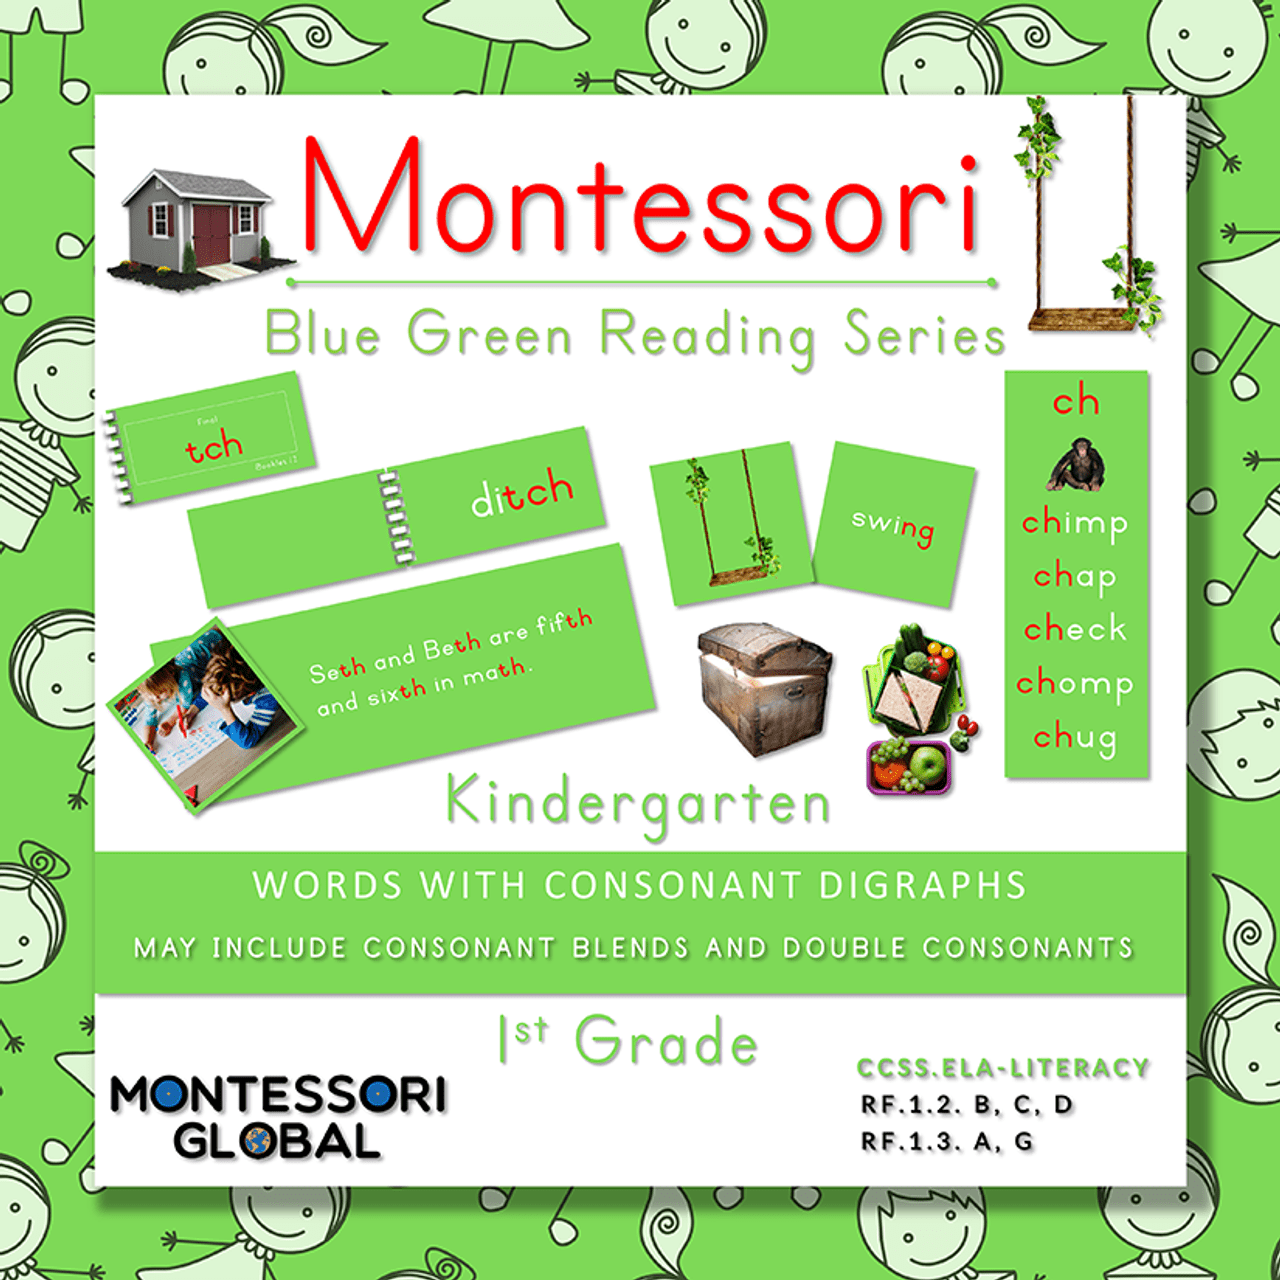 medium resolution of Montessori Blue Green Reading Series - Consonant Blends